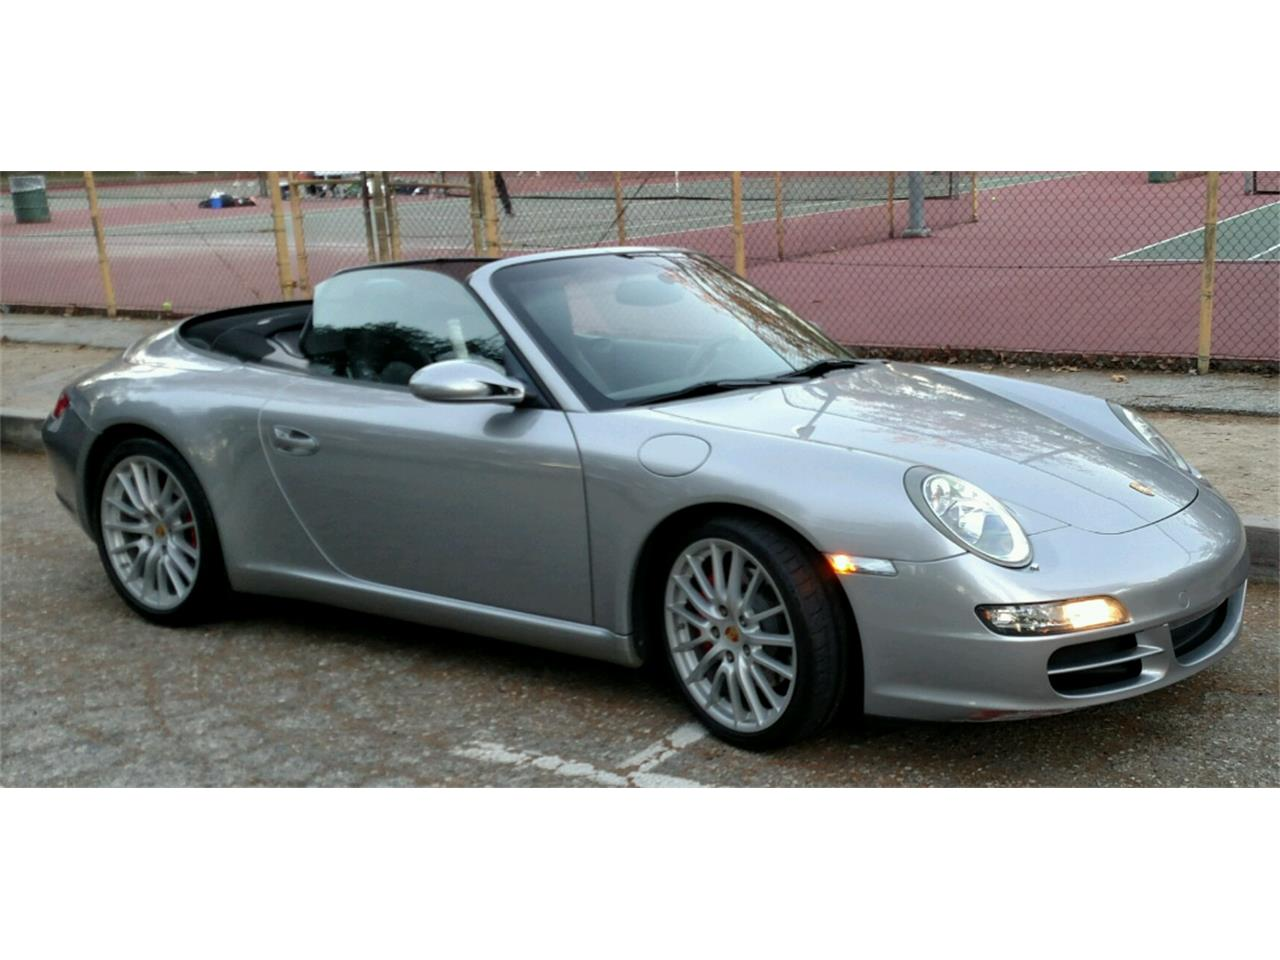 Large Picture of '06 911 Carrera S - $40,000.00 Offered by a Private Seller - KJ68